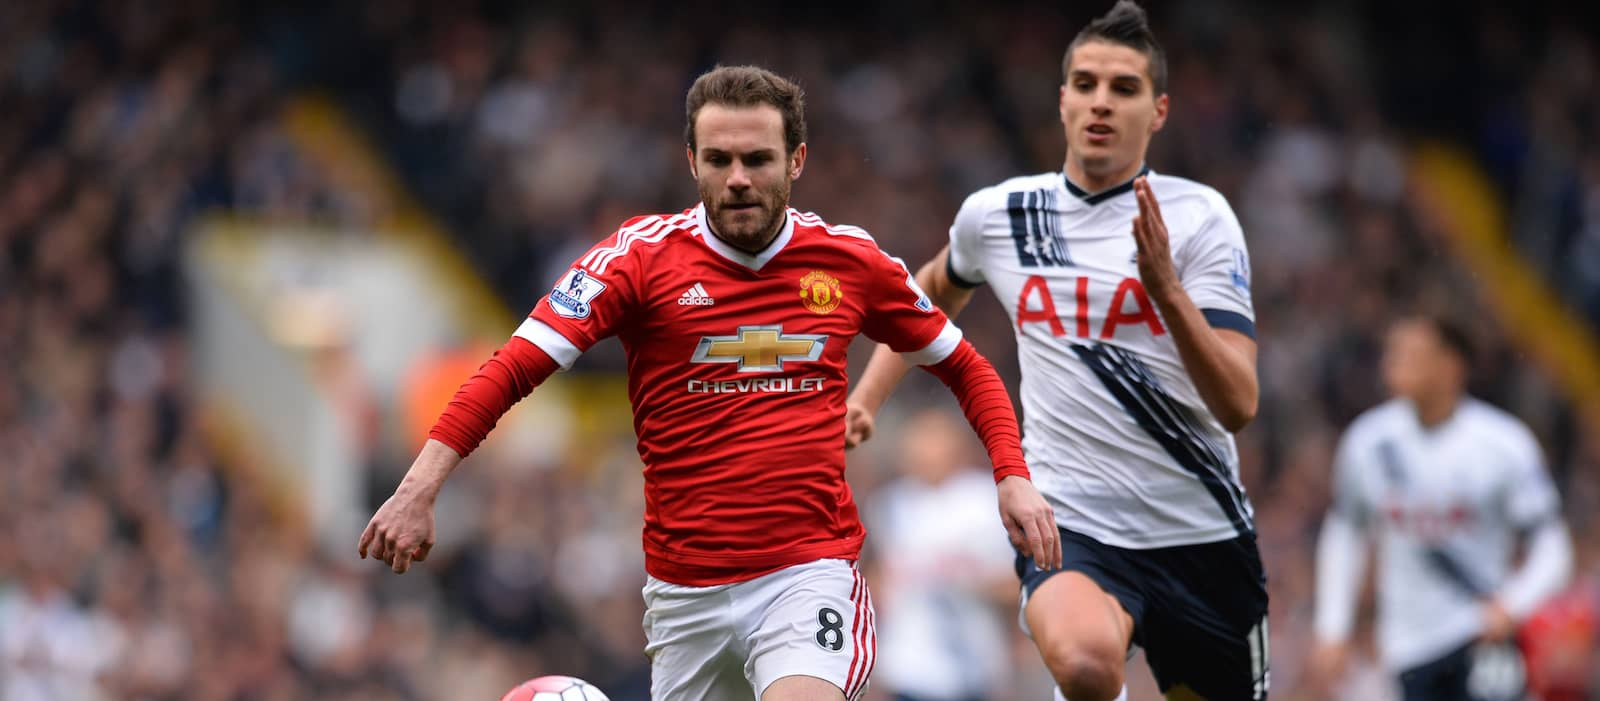 Player Ratings: Tottenham Hotspur 3-0 Manchester United